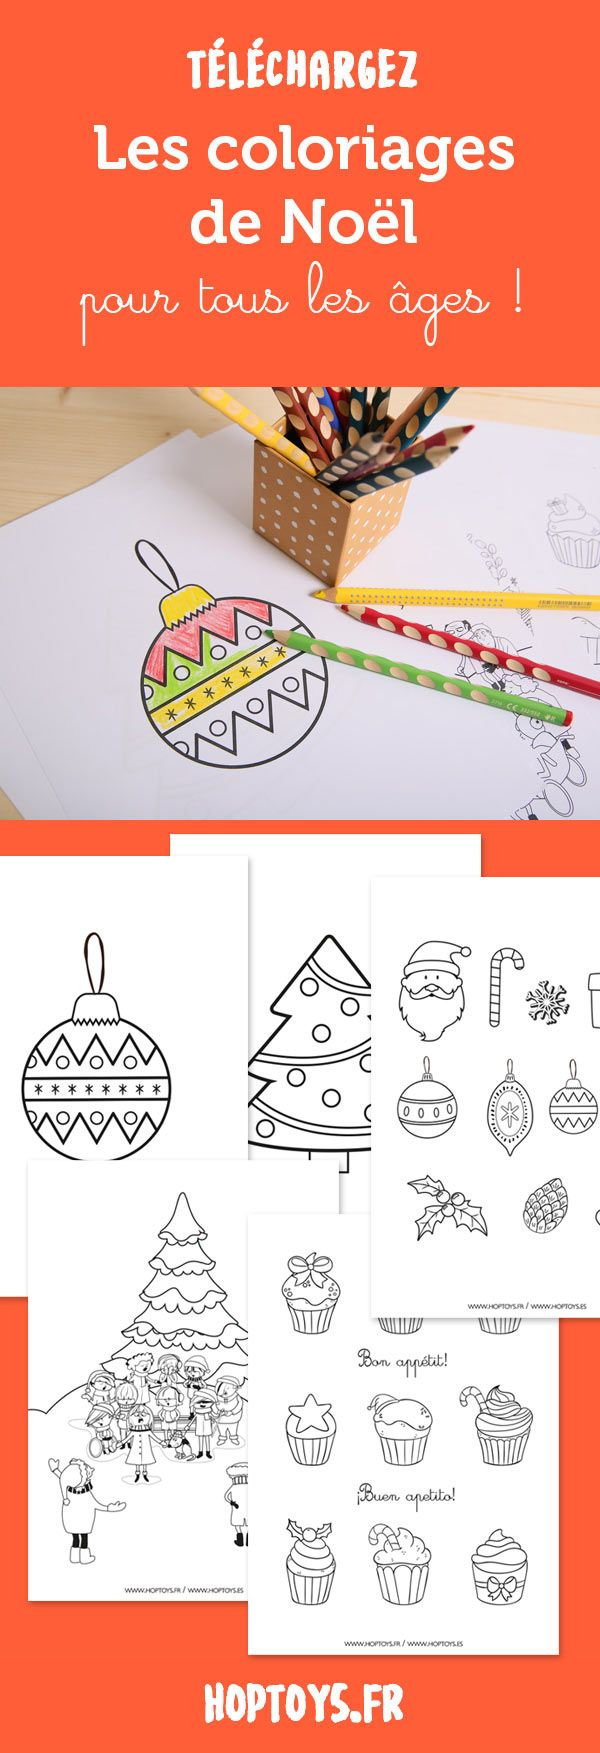 25 unique bricolage noel ideas on pinterest xmas crafts diy christmas cards and xmas cards - Coloriage bricolage ...